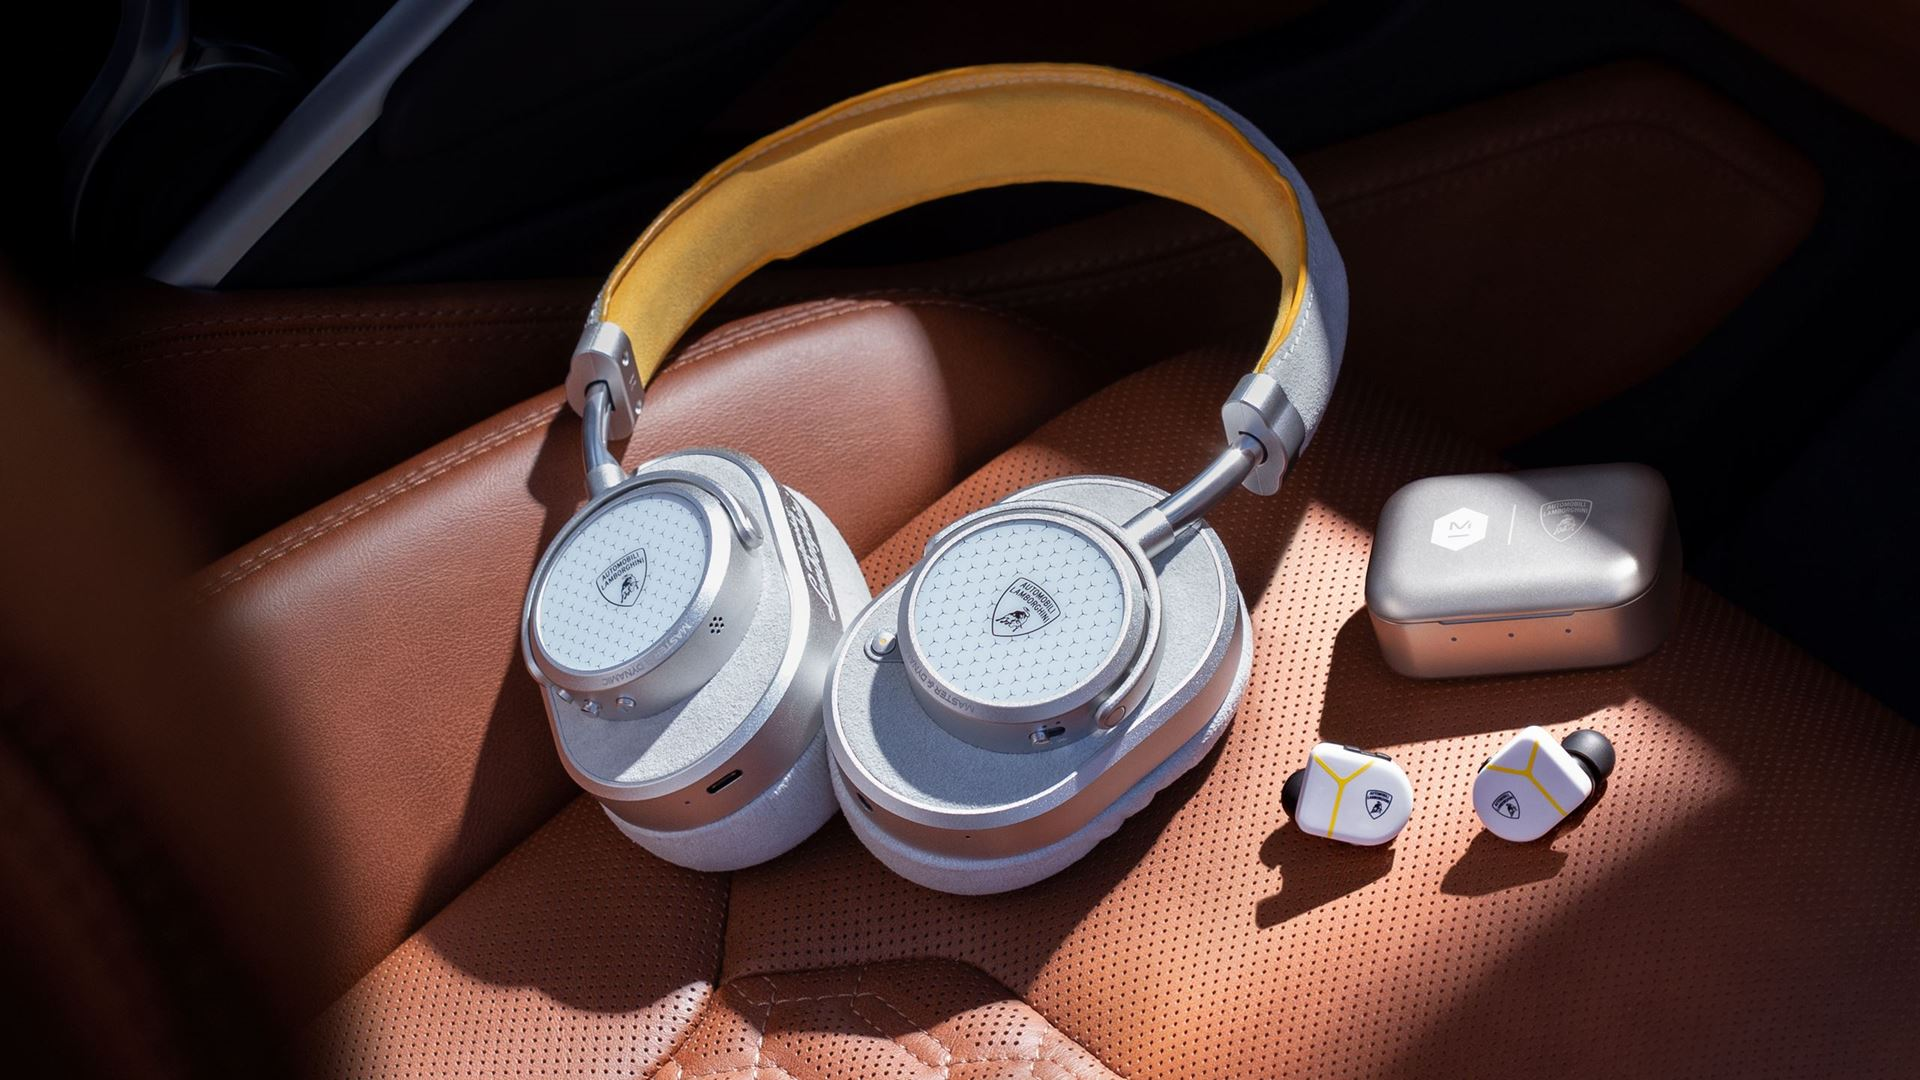 Automobili Lamborghini partners with Master & Dynamic on new headphones and earphones collection - Image 1